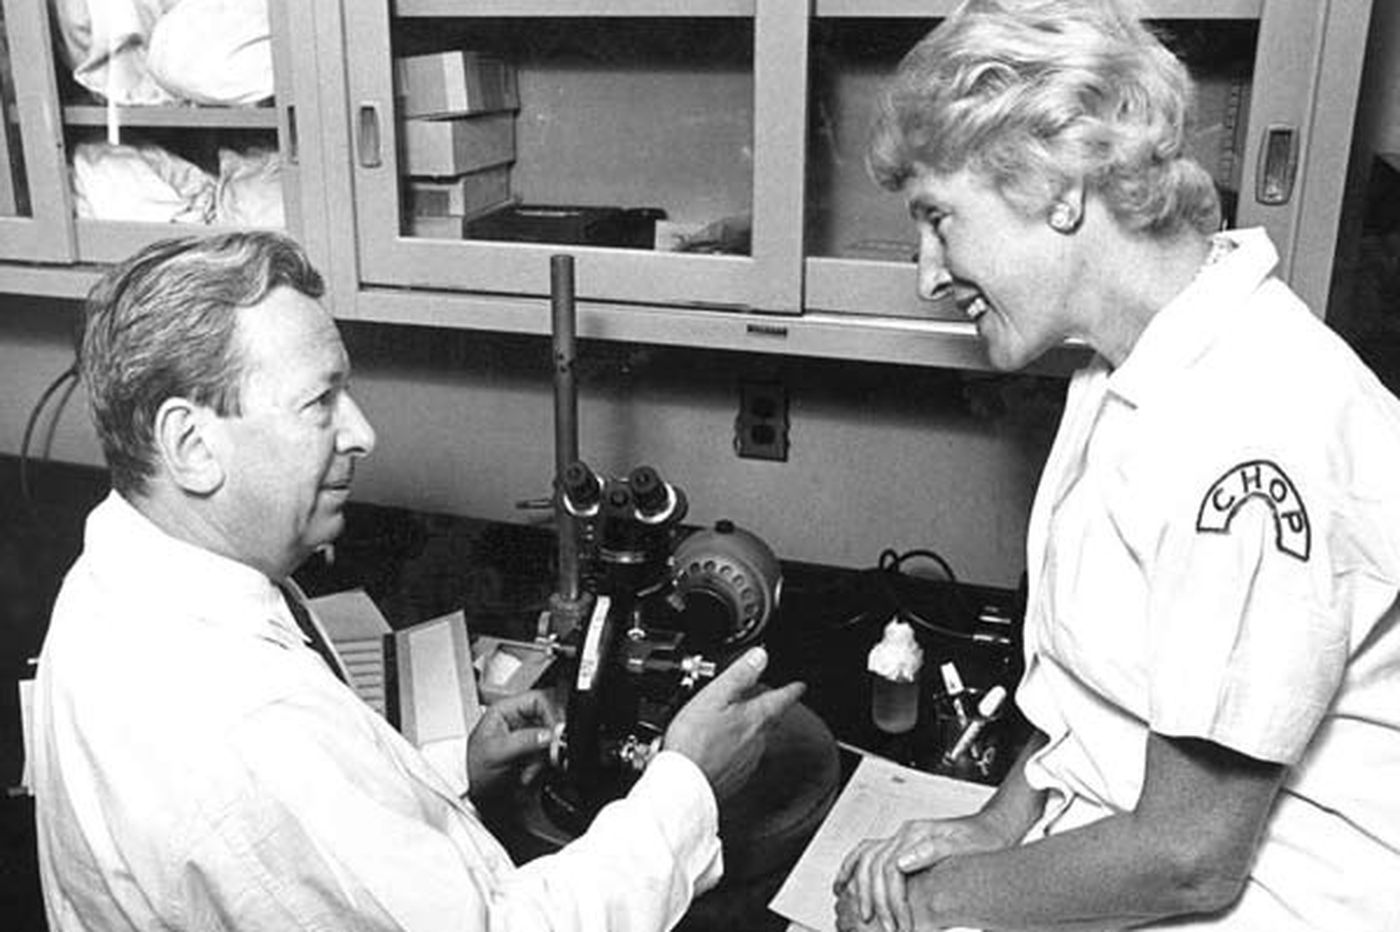 Couple's virology research at Penn was pioneering